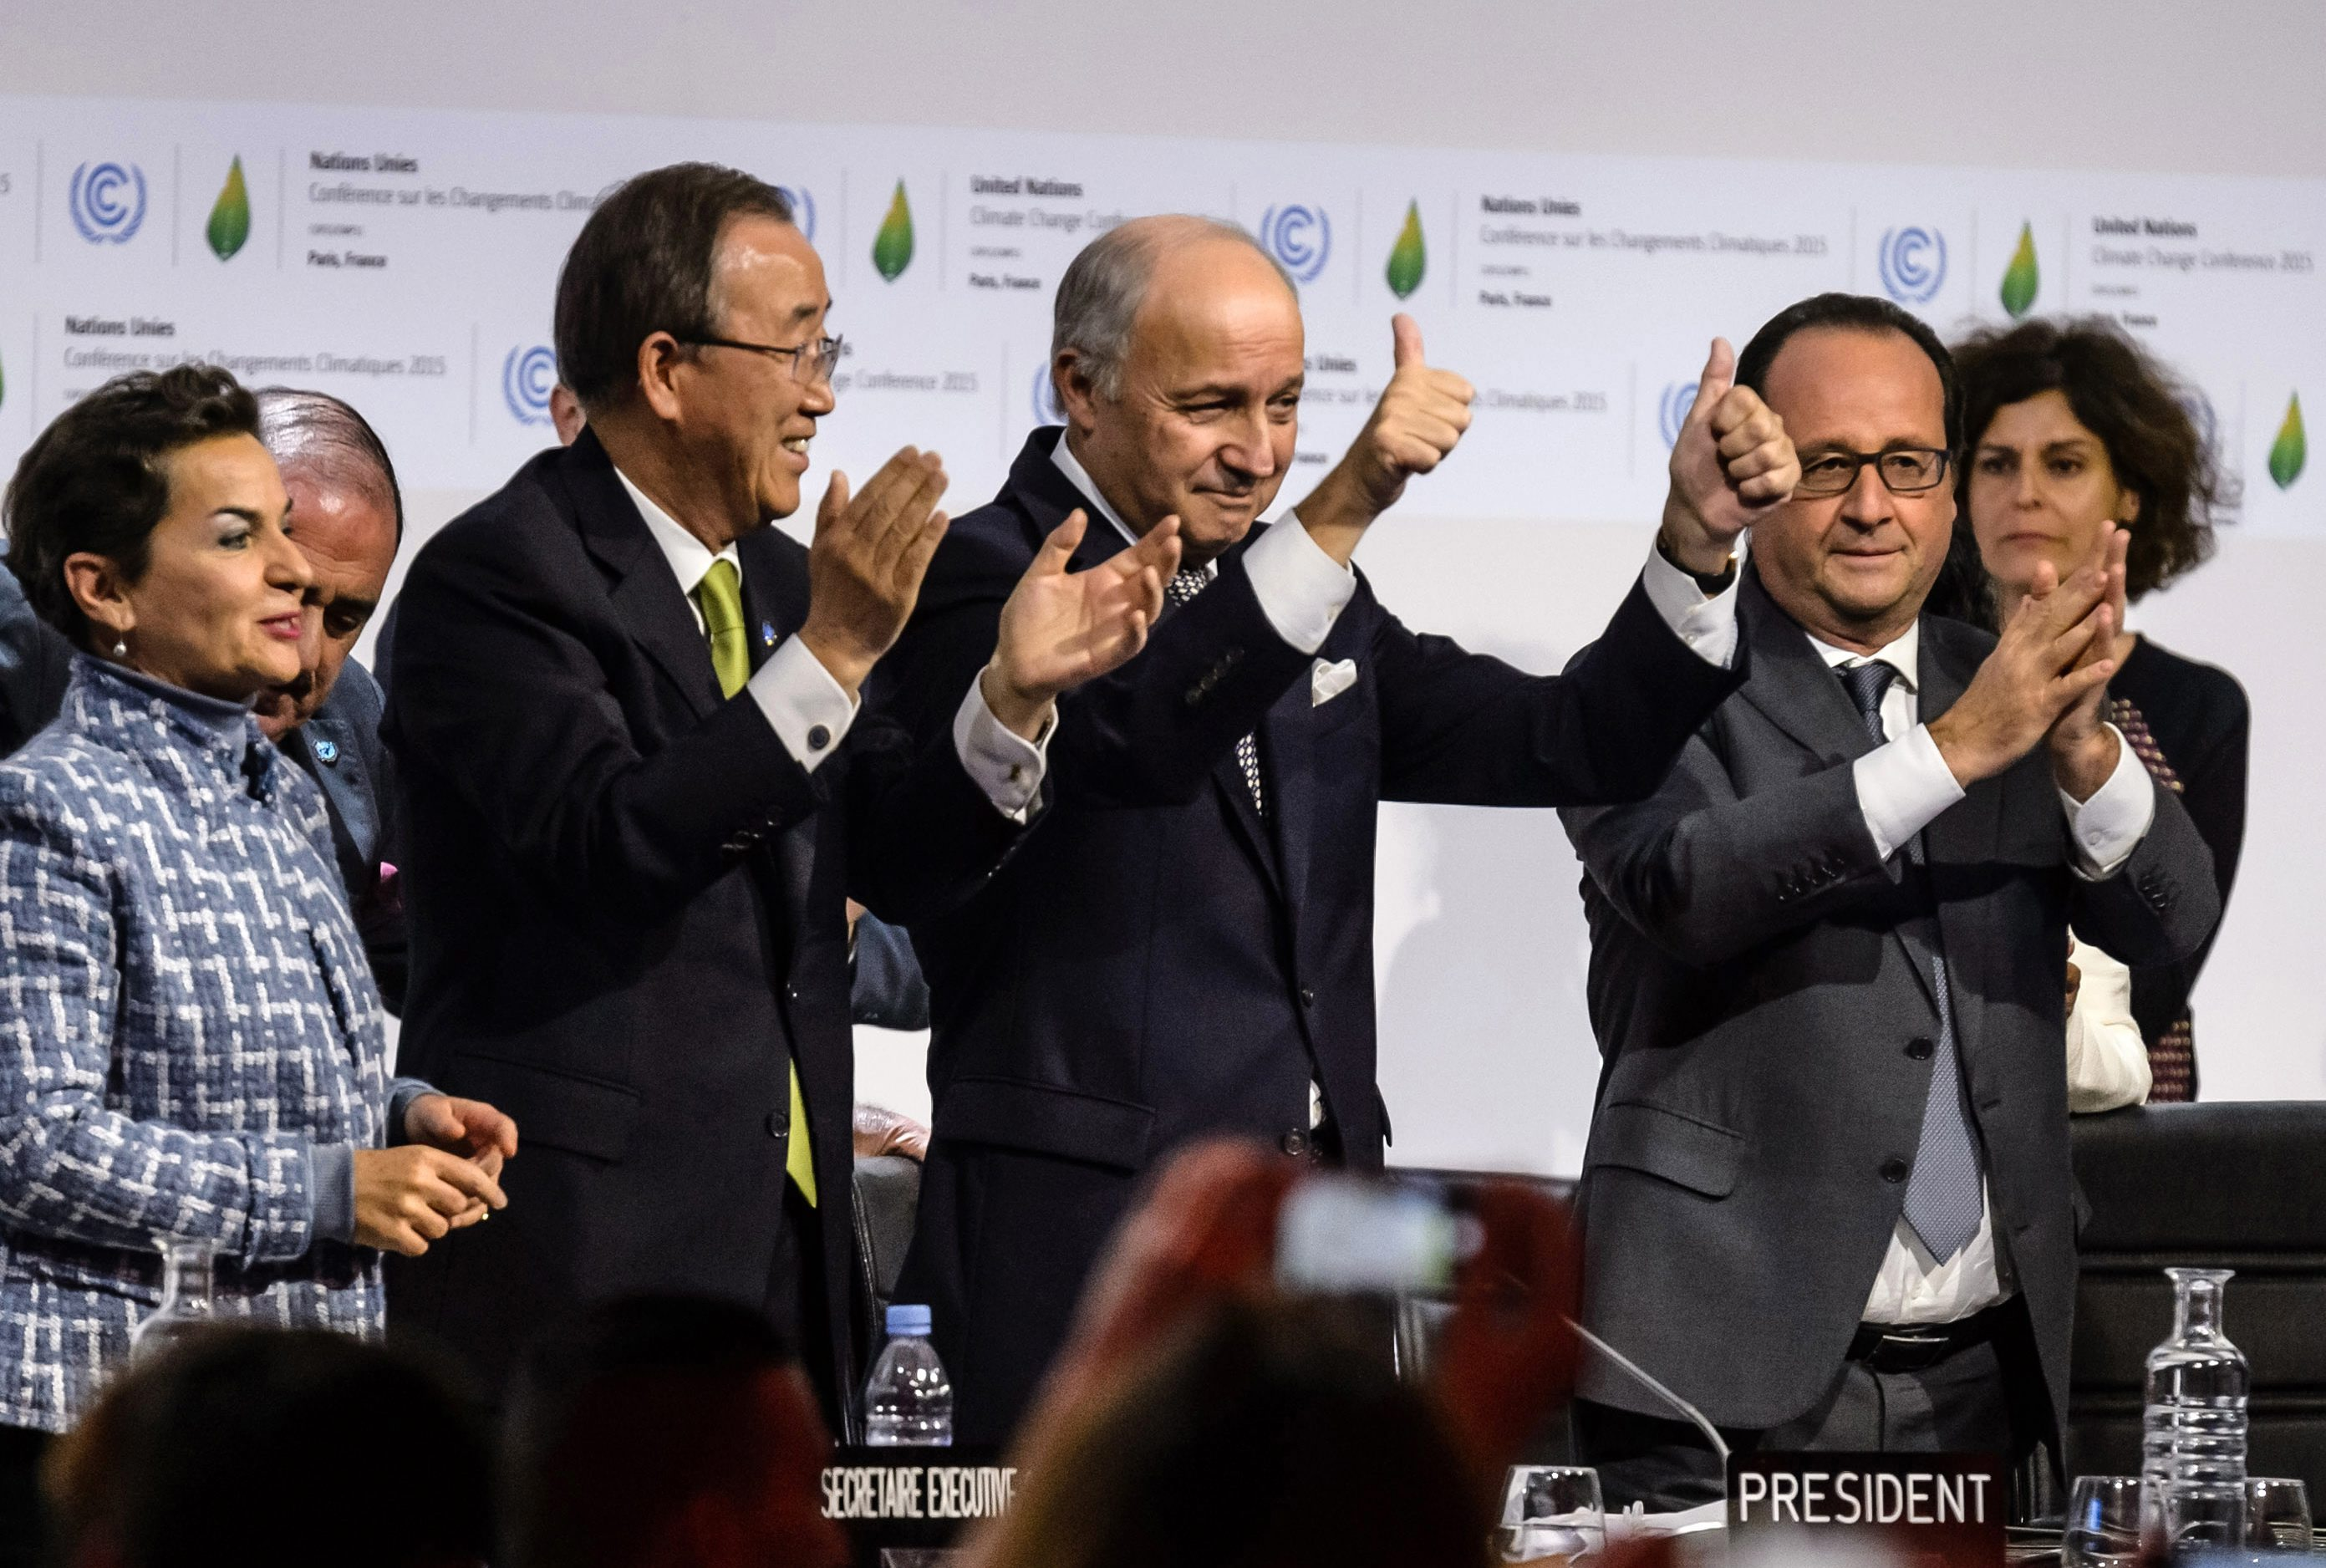 Paris climate change agreement: the deal at a glance